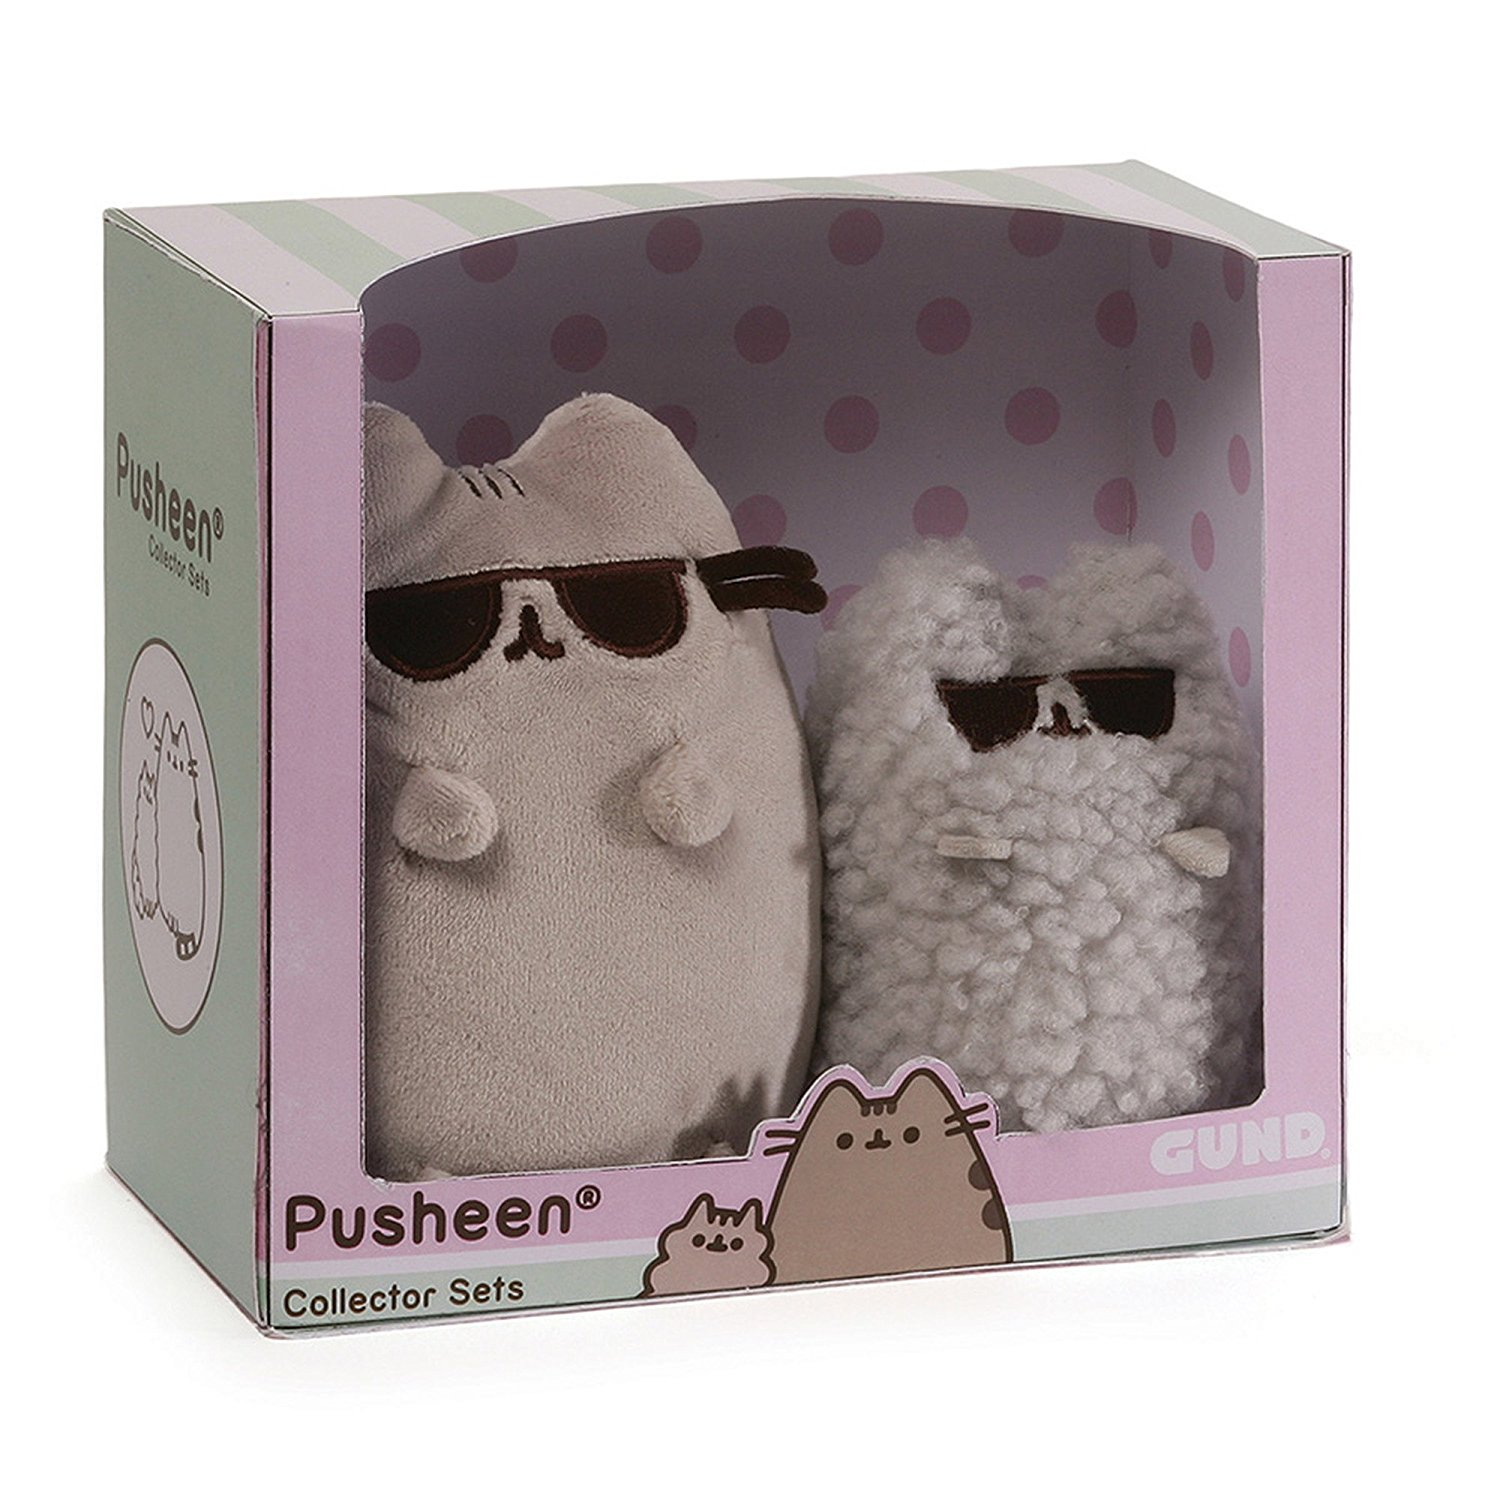 GUND Cool Sunglasses Pusheen and Stormy Collector Set Series 1